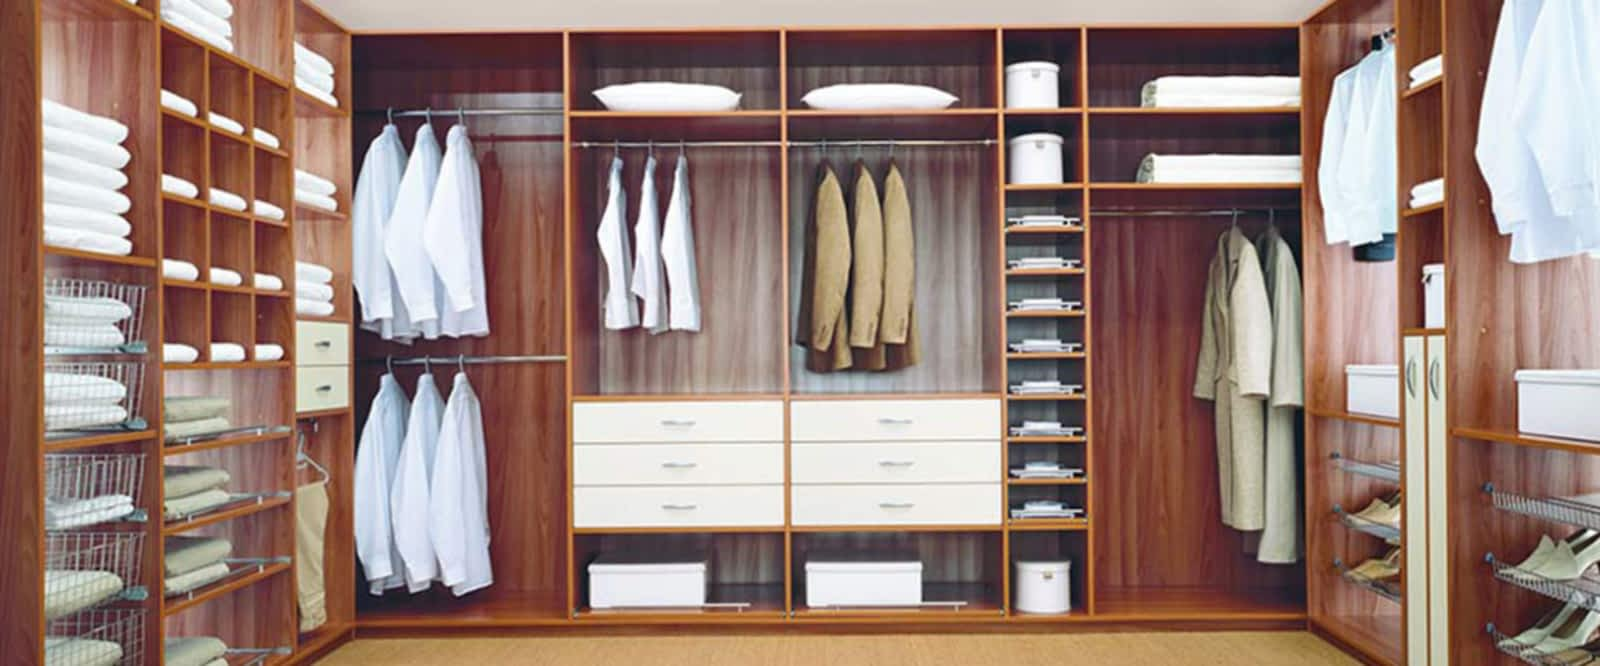 ohperfect design good plan ideas bedroom closet